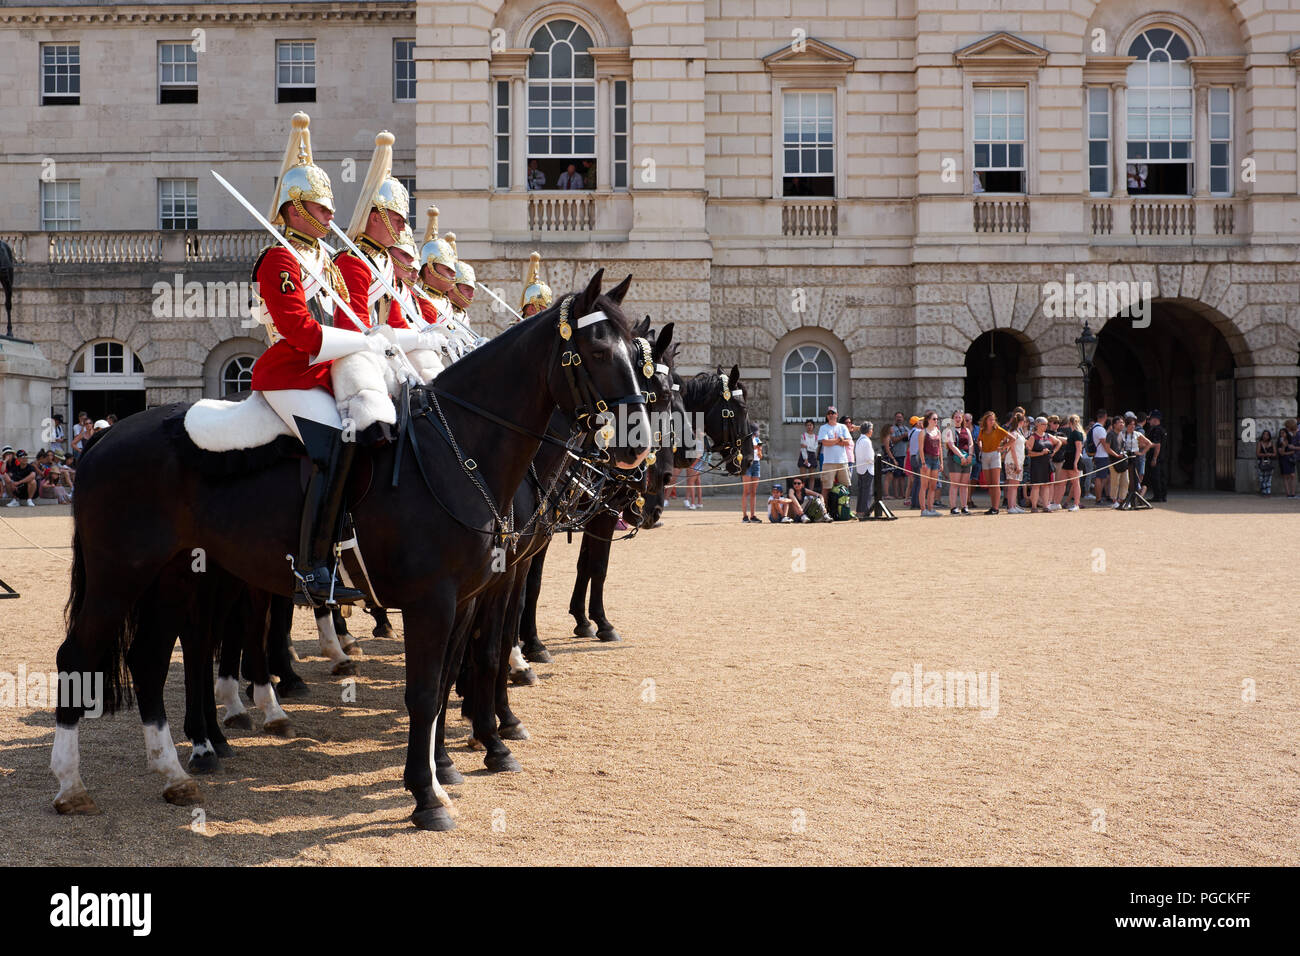 London / UK - July 26th 2018: Soldiers, mounted on horseback, on guard at Horseguard's Parade in London - Stock Image